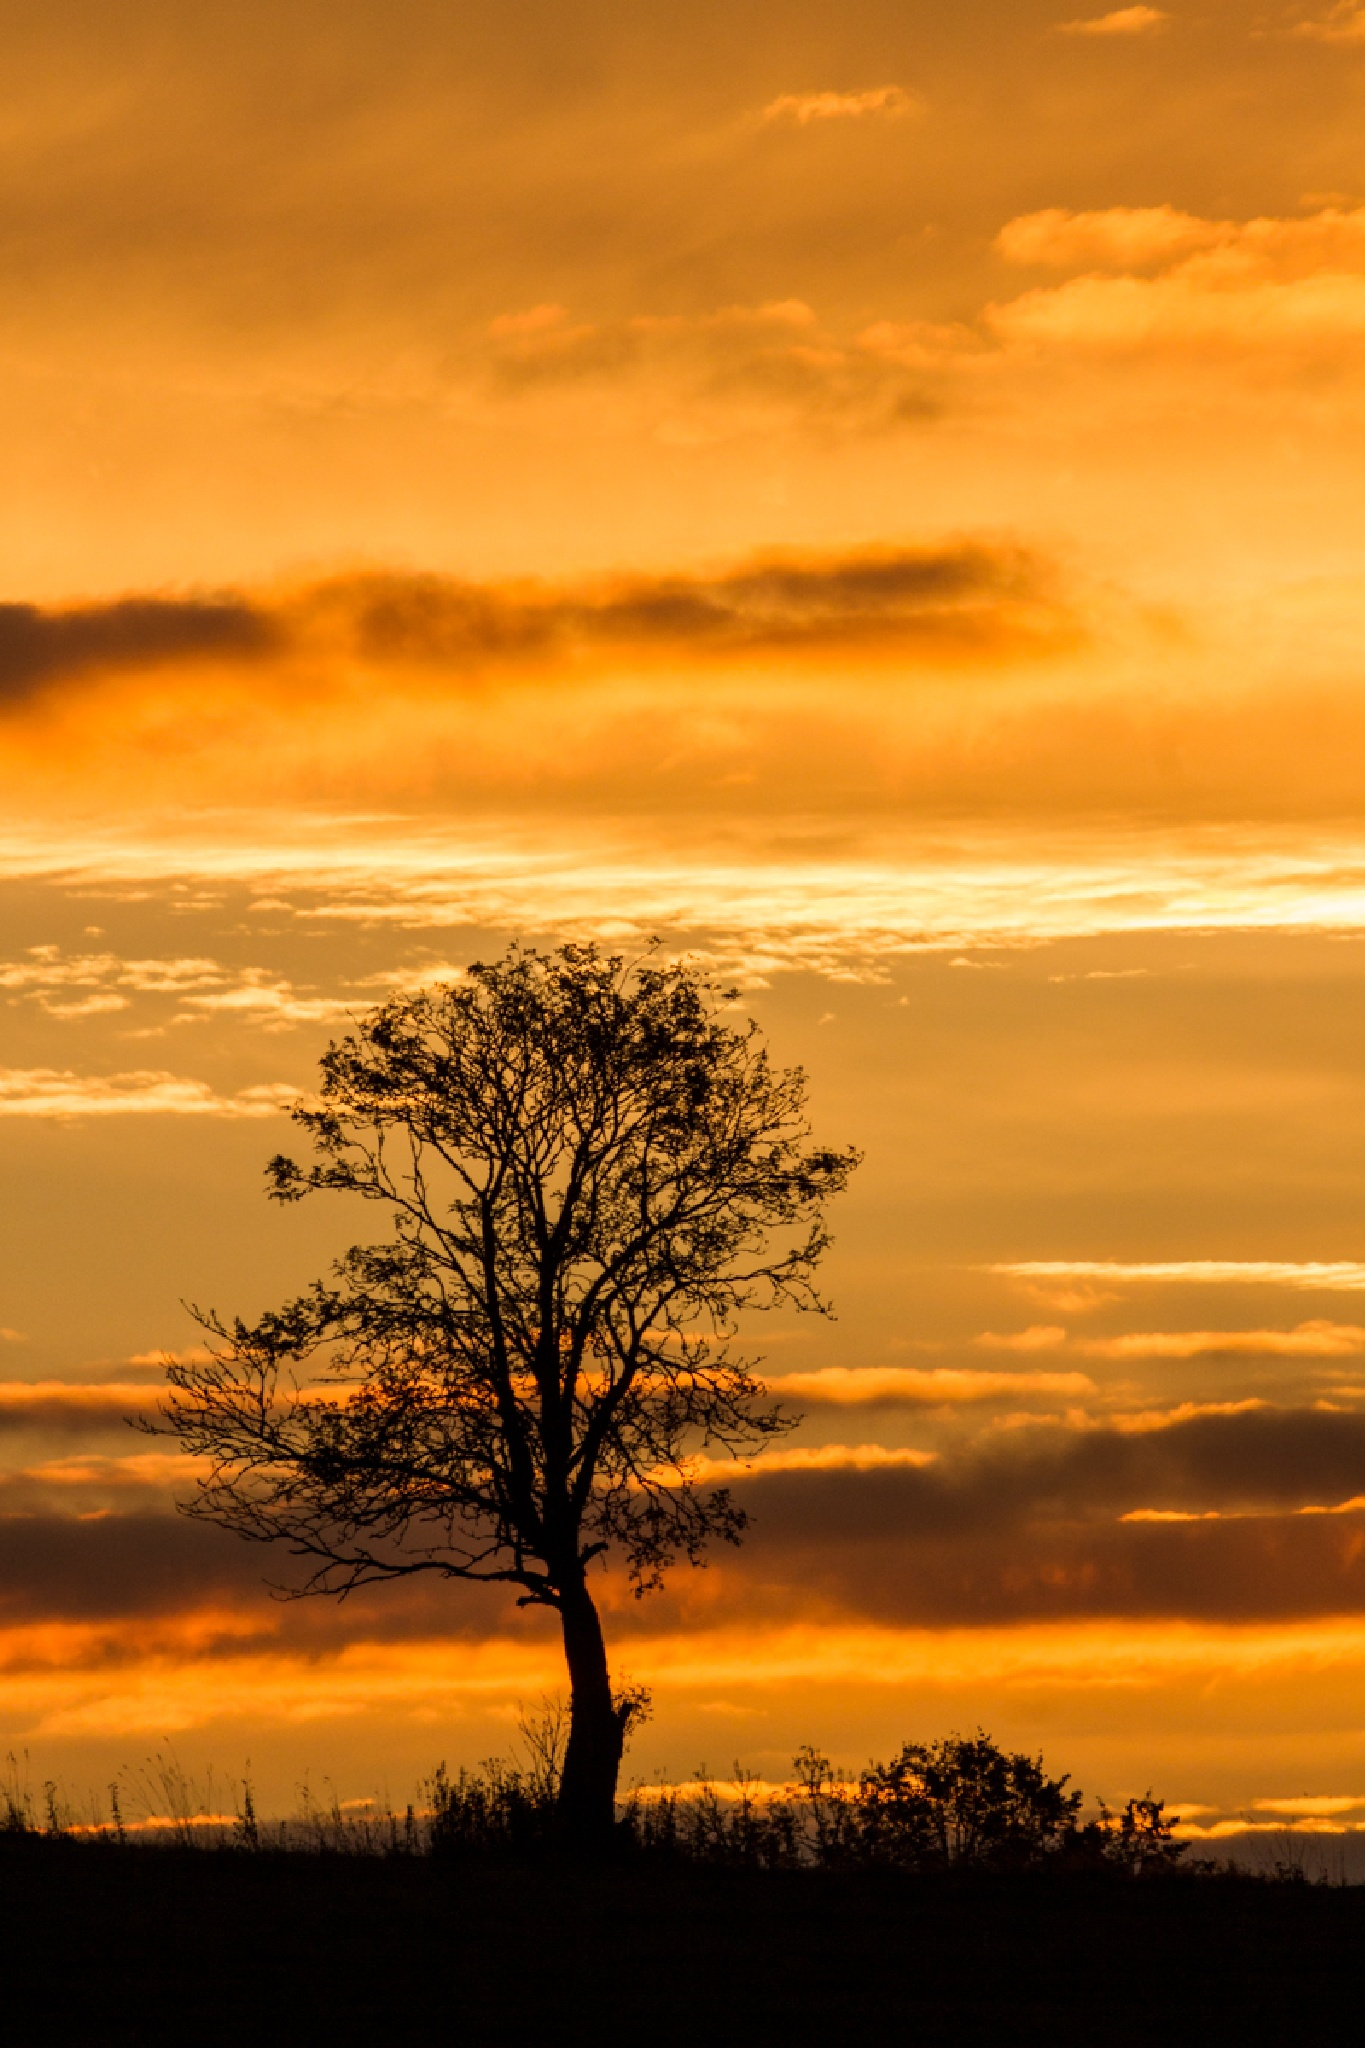 Single tree by mikael.breding